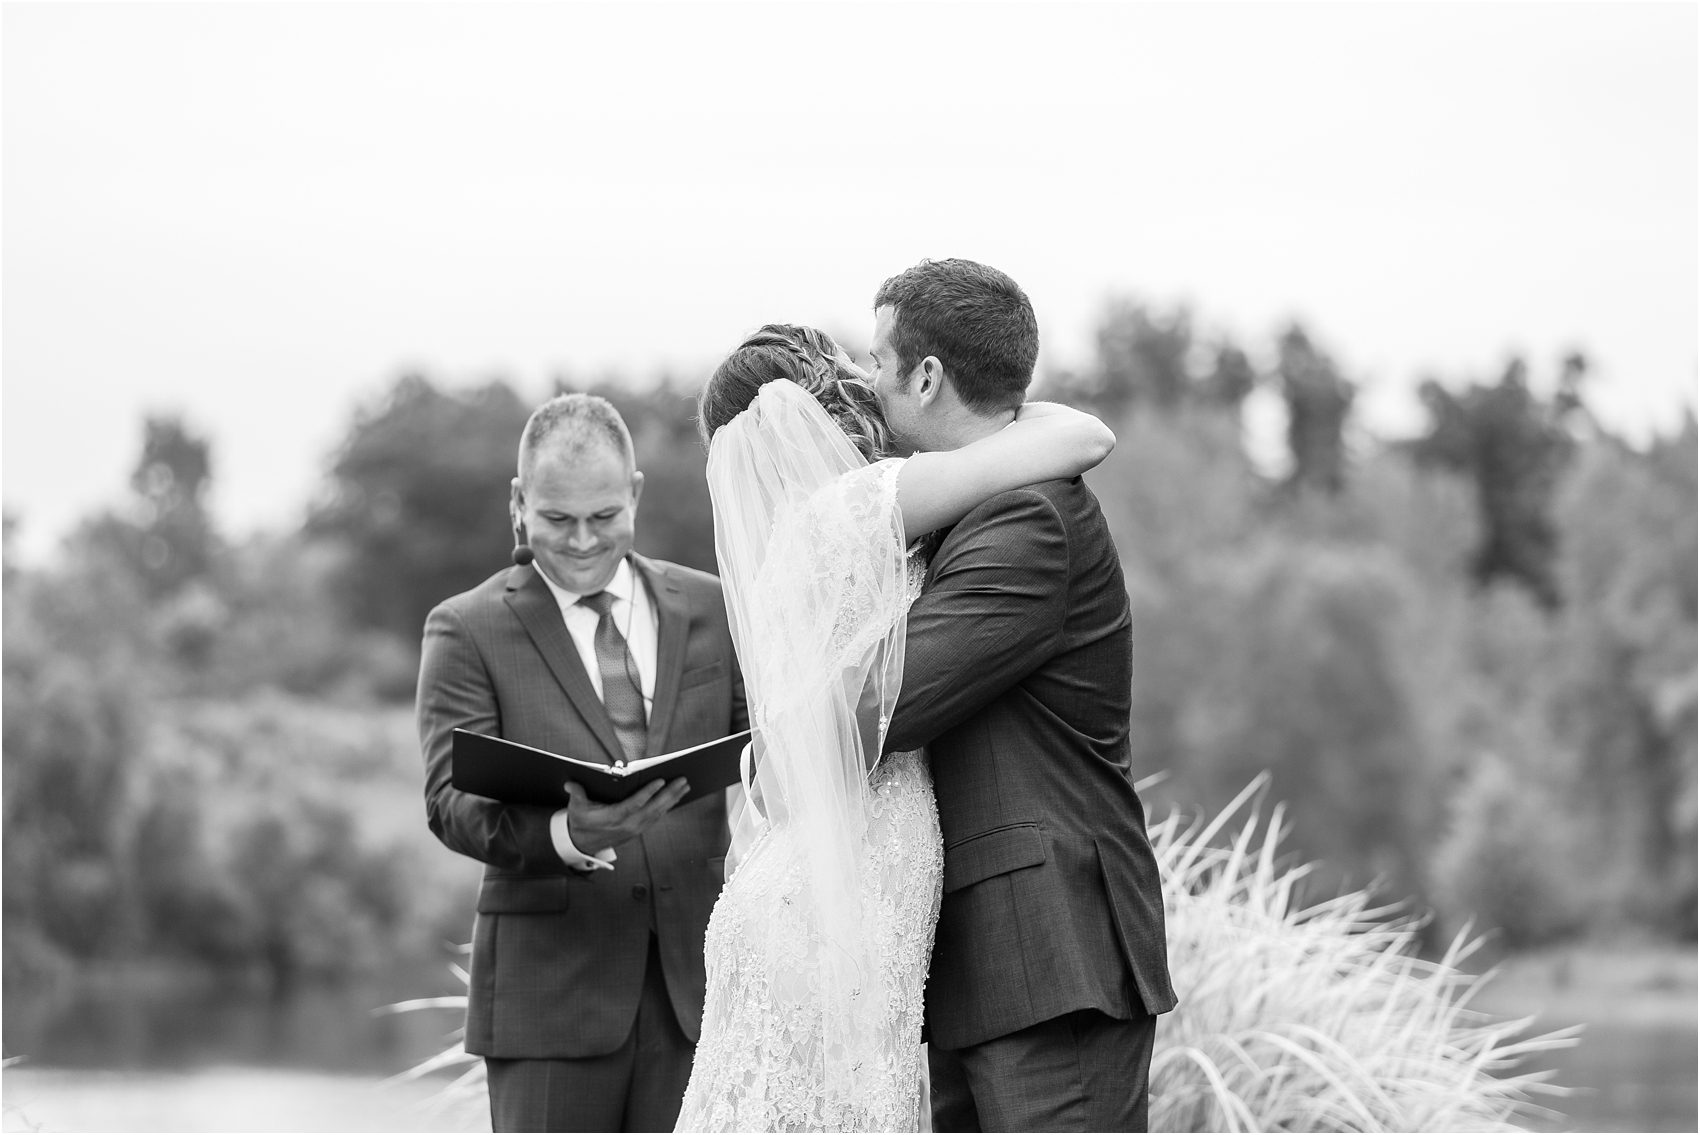 romantic-intimate-backyard-wedding-photos-at-private-estate-in-ann-arbor-mi-by-courtney-carolyn-photography_0107.jpg